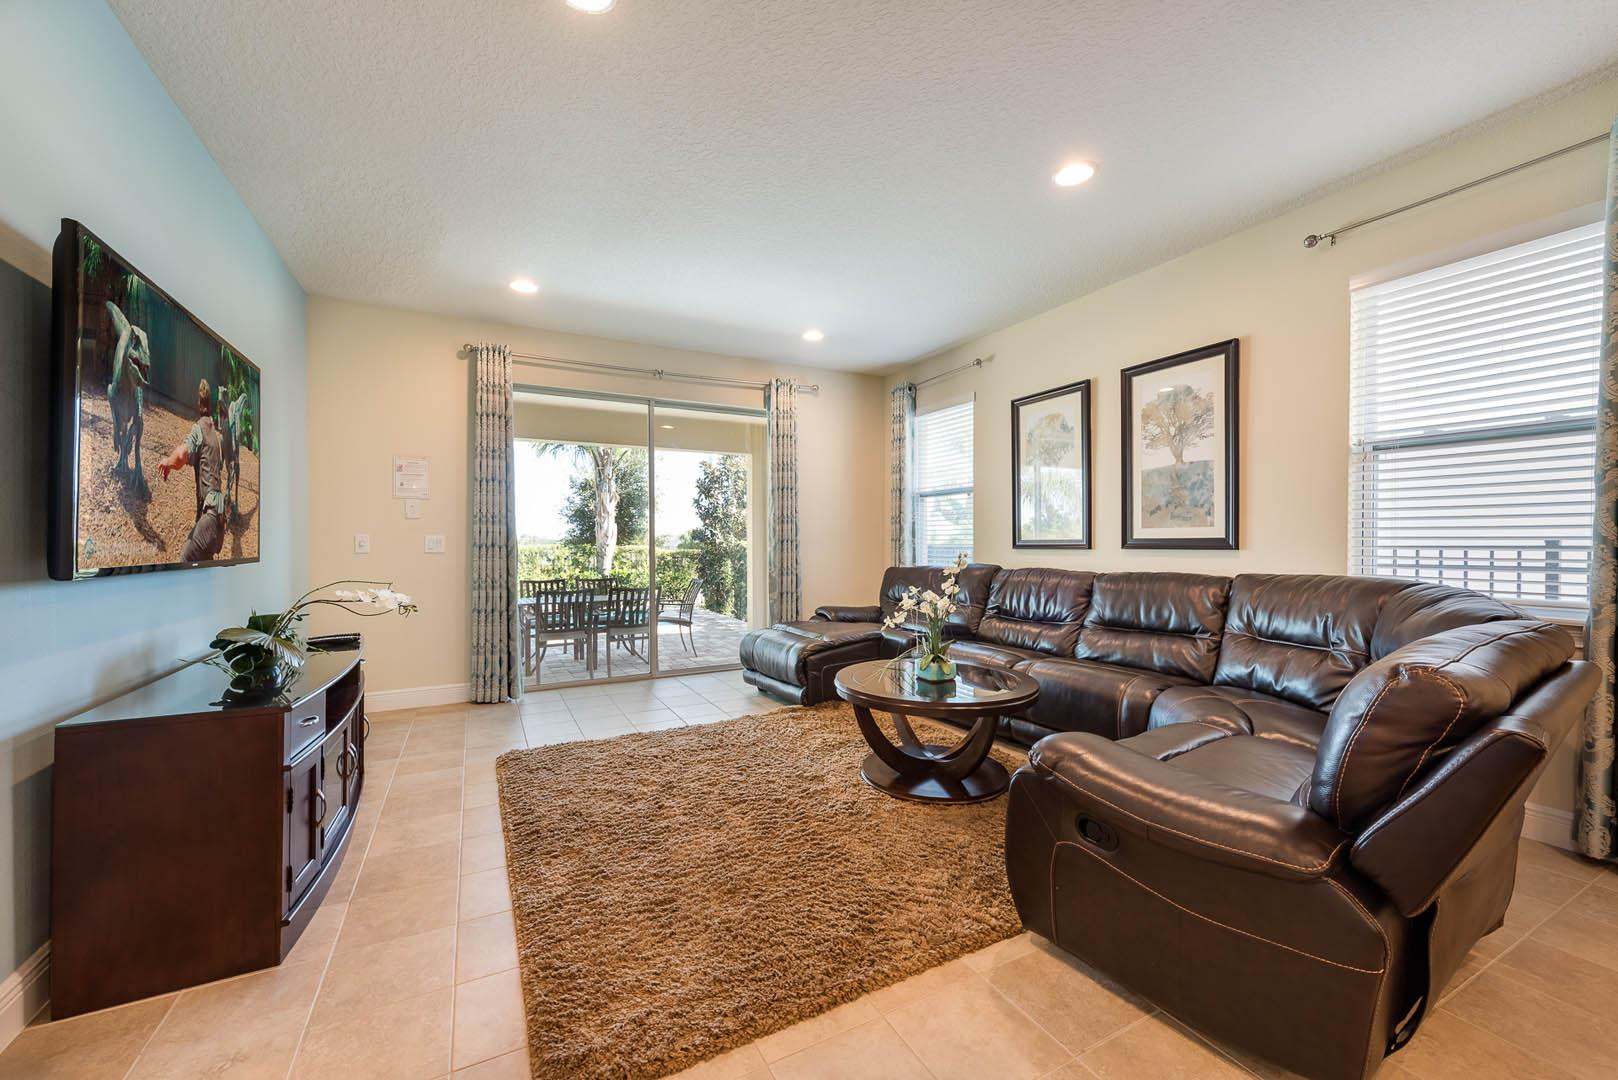 Property Image 1 - Spacious Home near Disney with Water Park Access